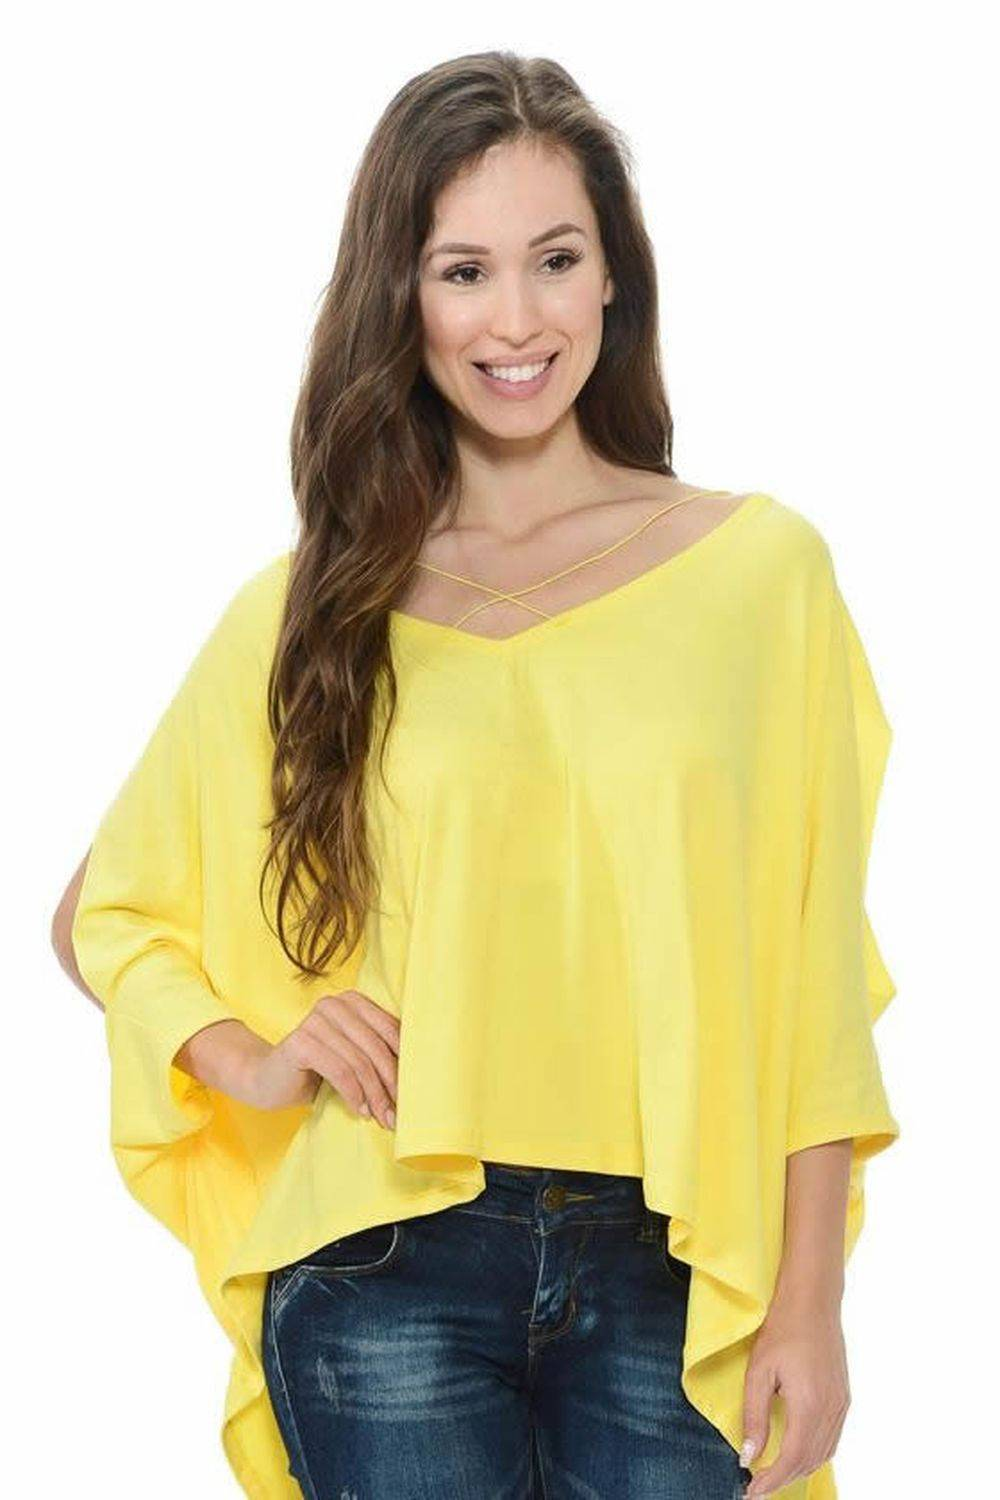 WOMENS TUNIC TOPS WEAR BLOUSES : Types of Basic Womens Tops